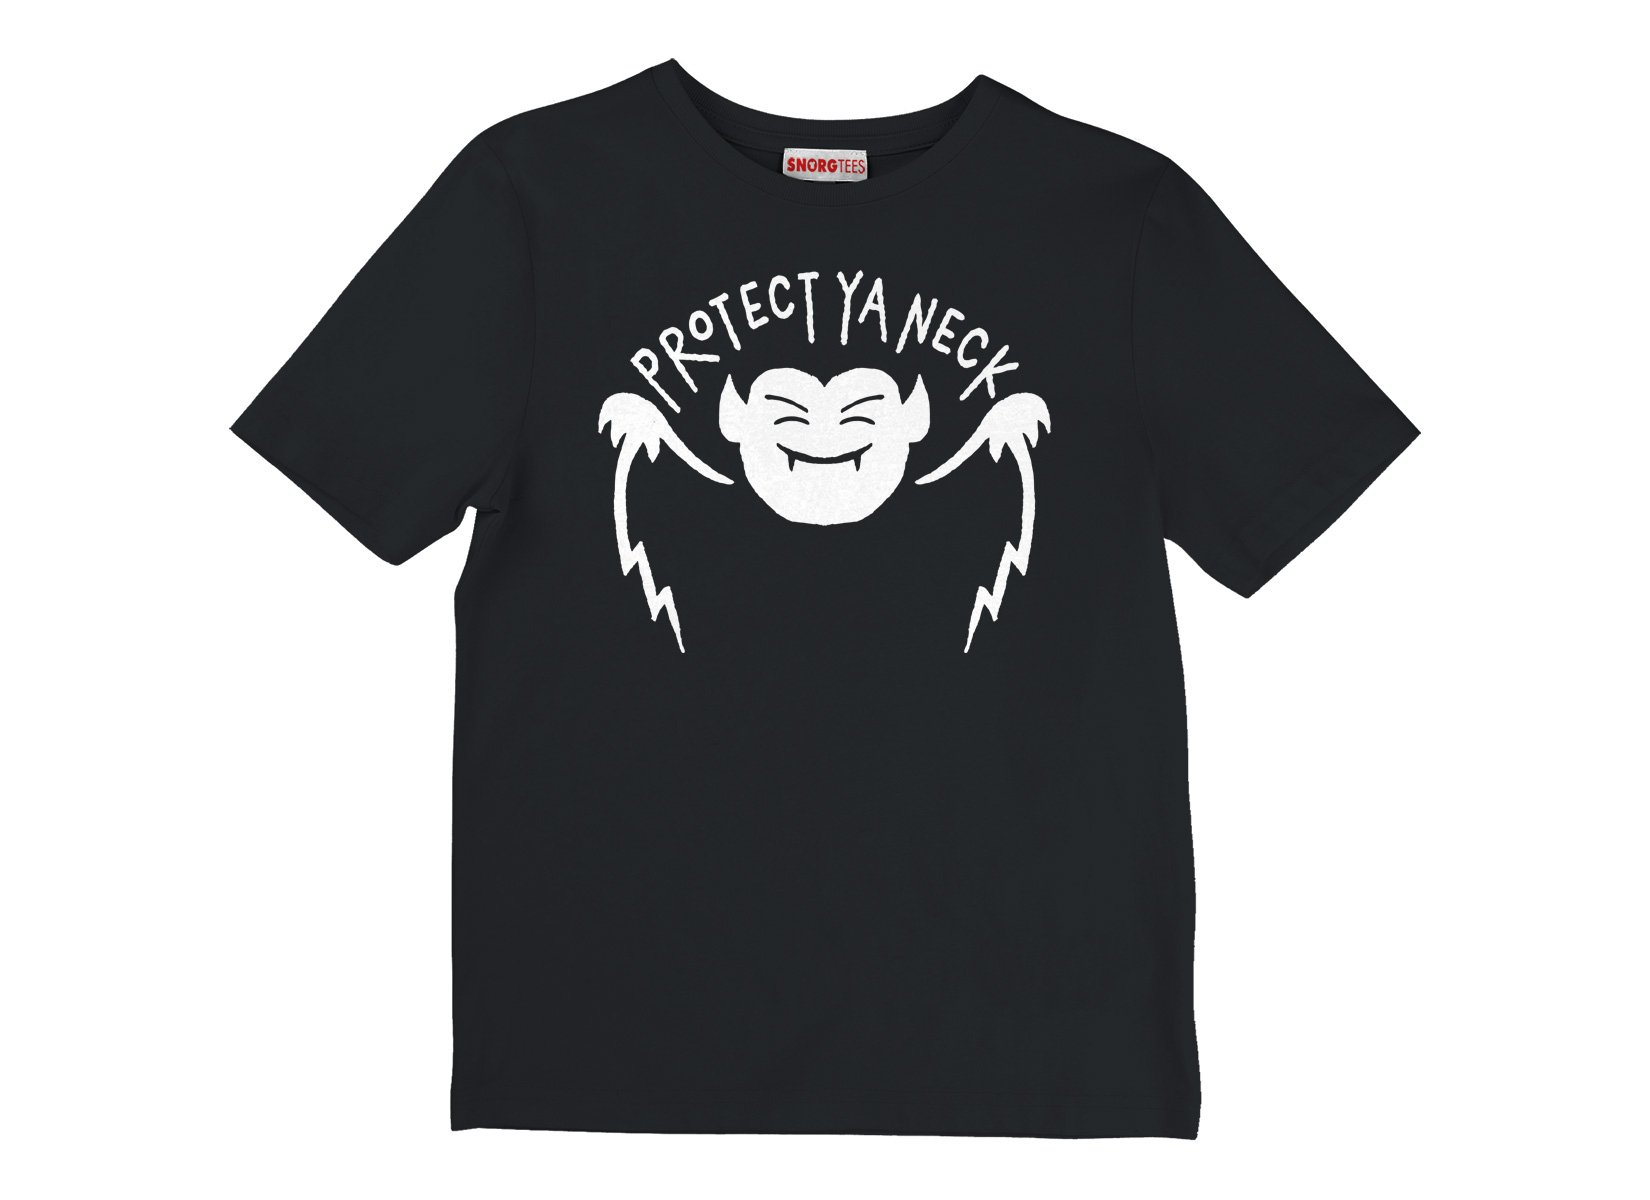 Protect Ya Neck on Kids T-Shirt